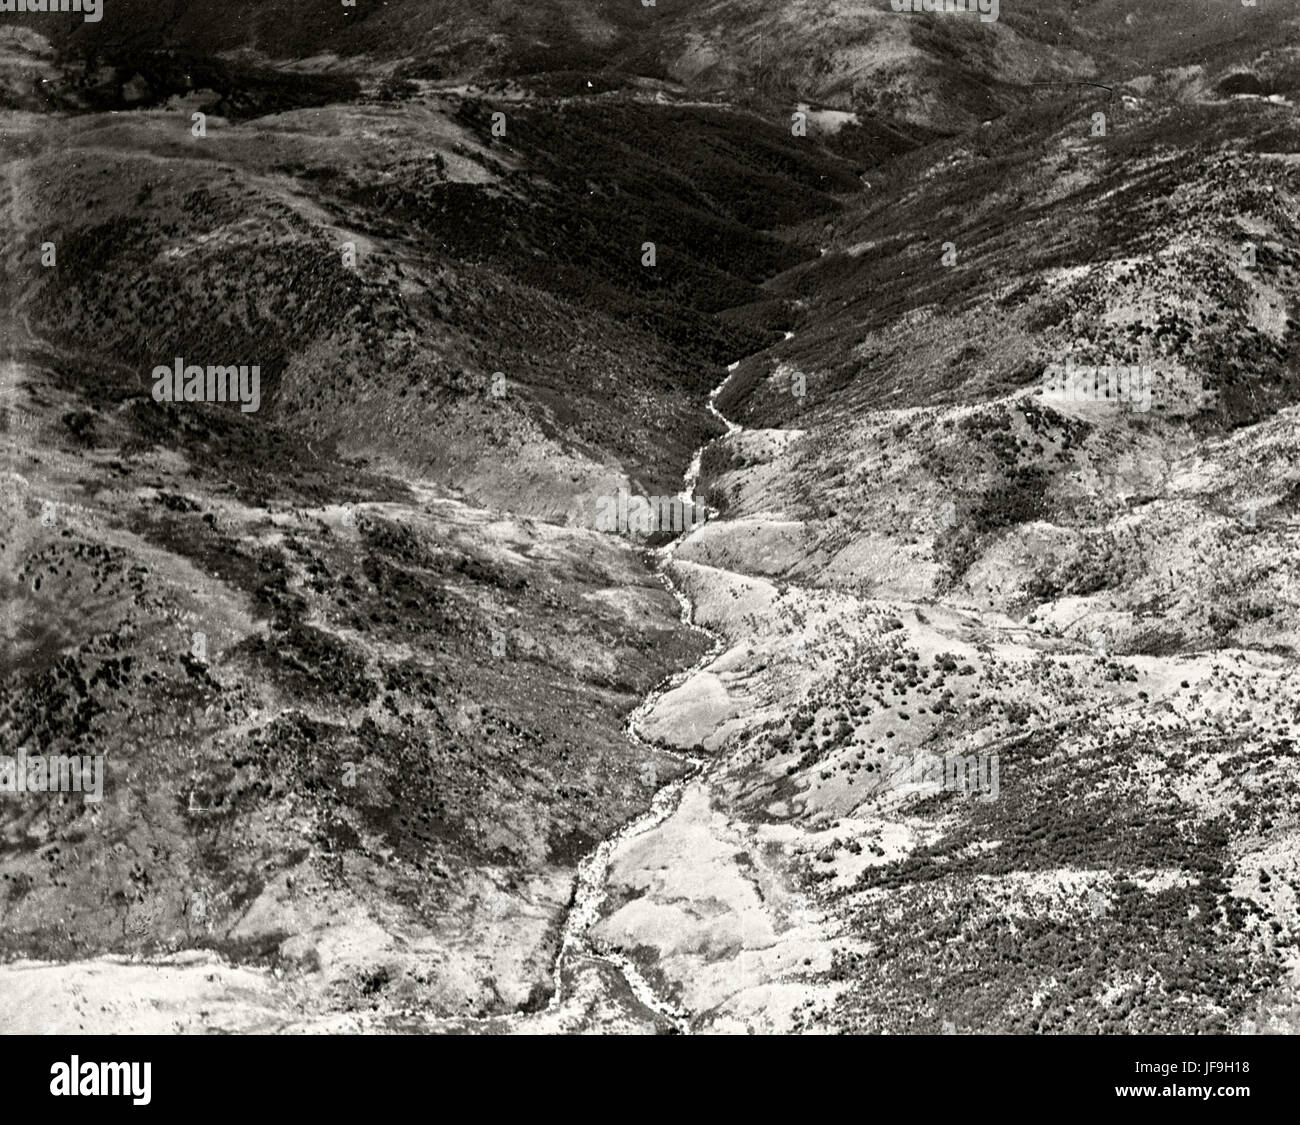 Snowy River - 11 March 1937 30156476892 o - Stock Image